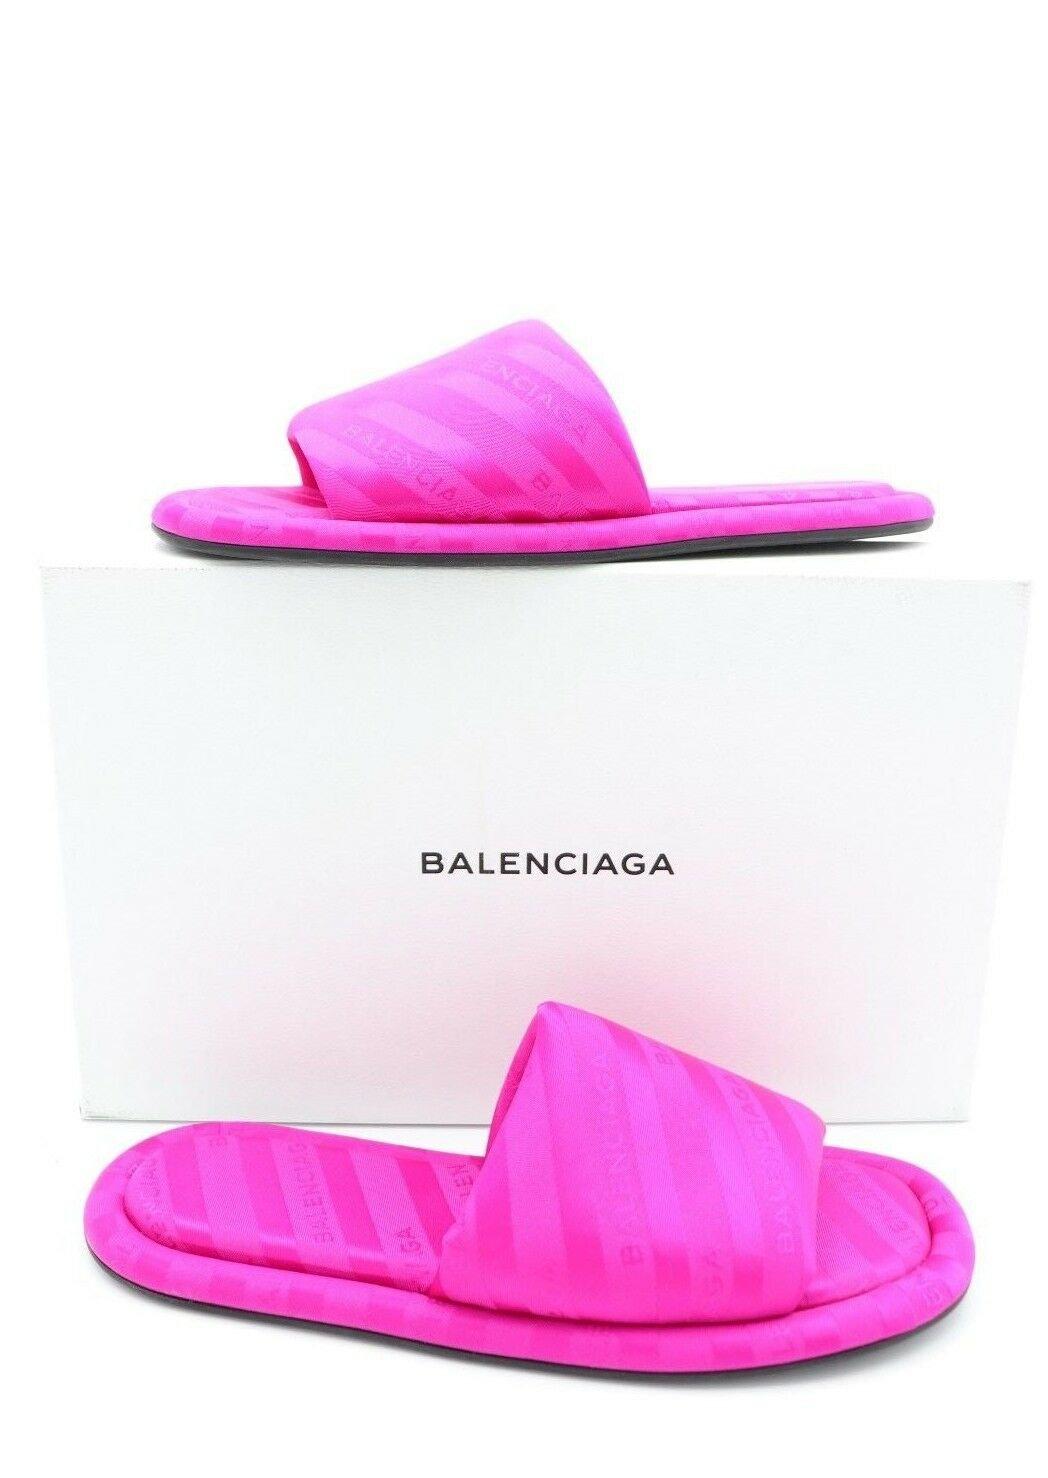 NIB BALENCIAGA Rosa Hotel Striped Logo Flat Slide Sandals 650 7 37  650 Sandals New ea68e2